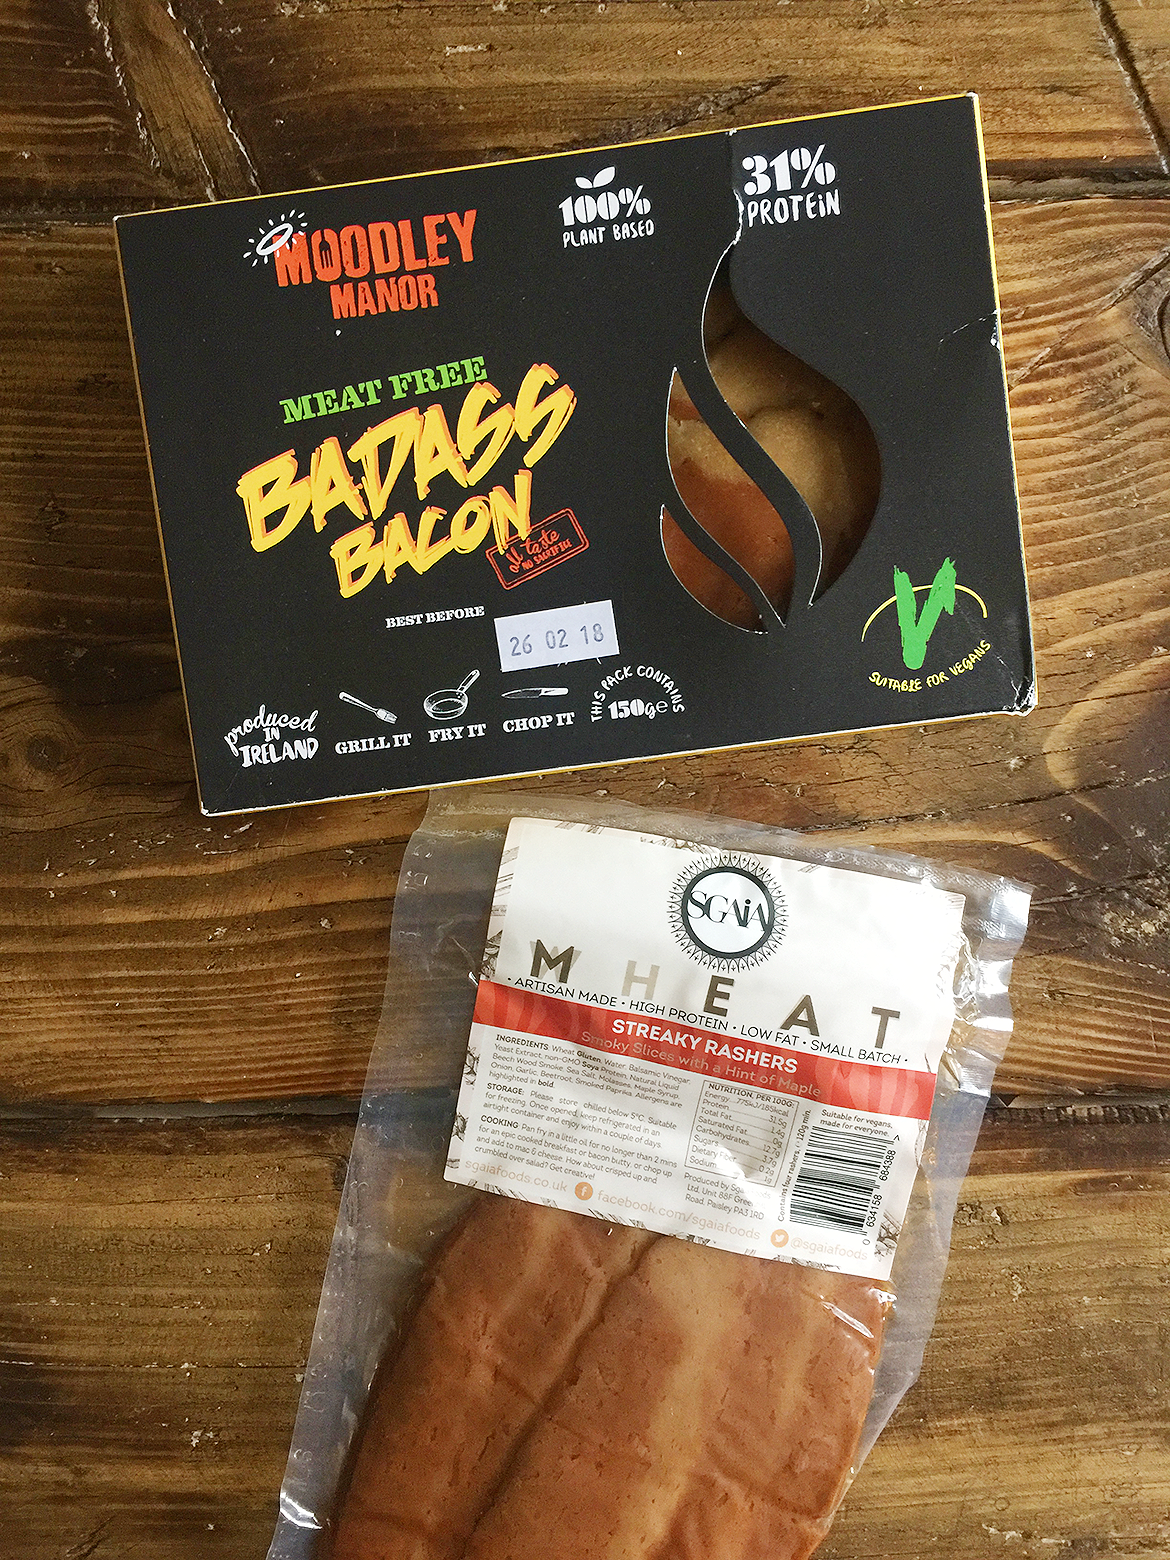 vegan bacon moodley manor and sgaia bought from The Vegan Kind